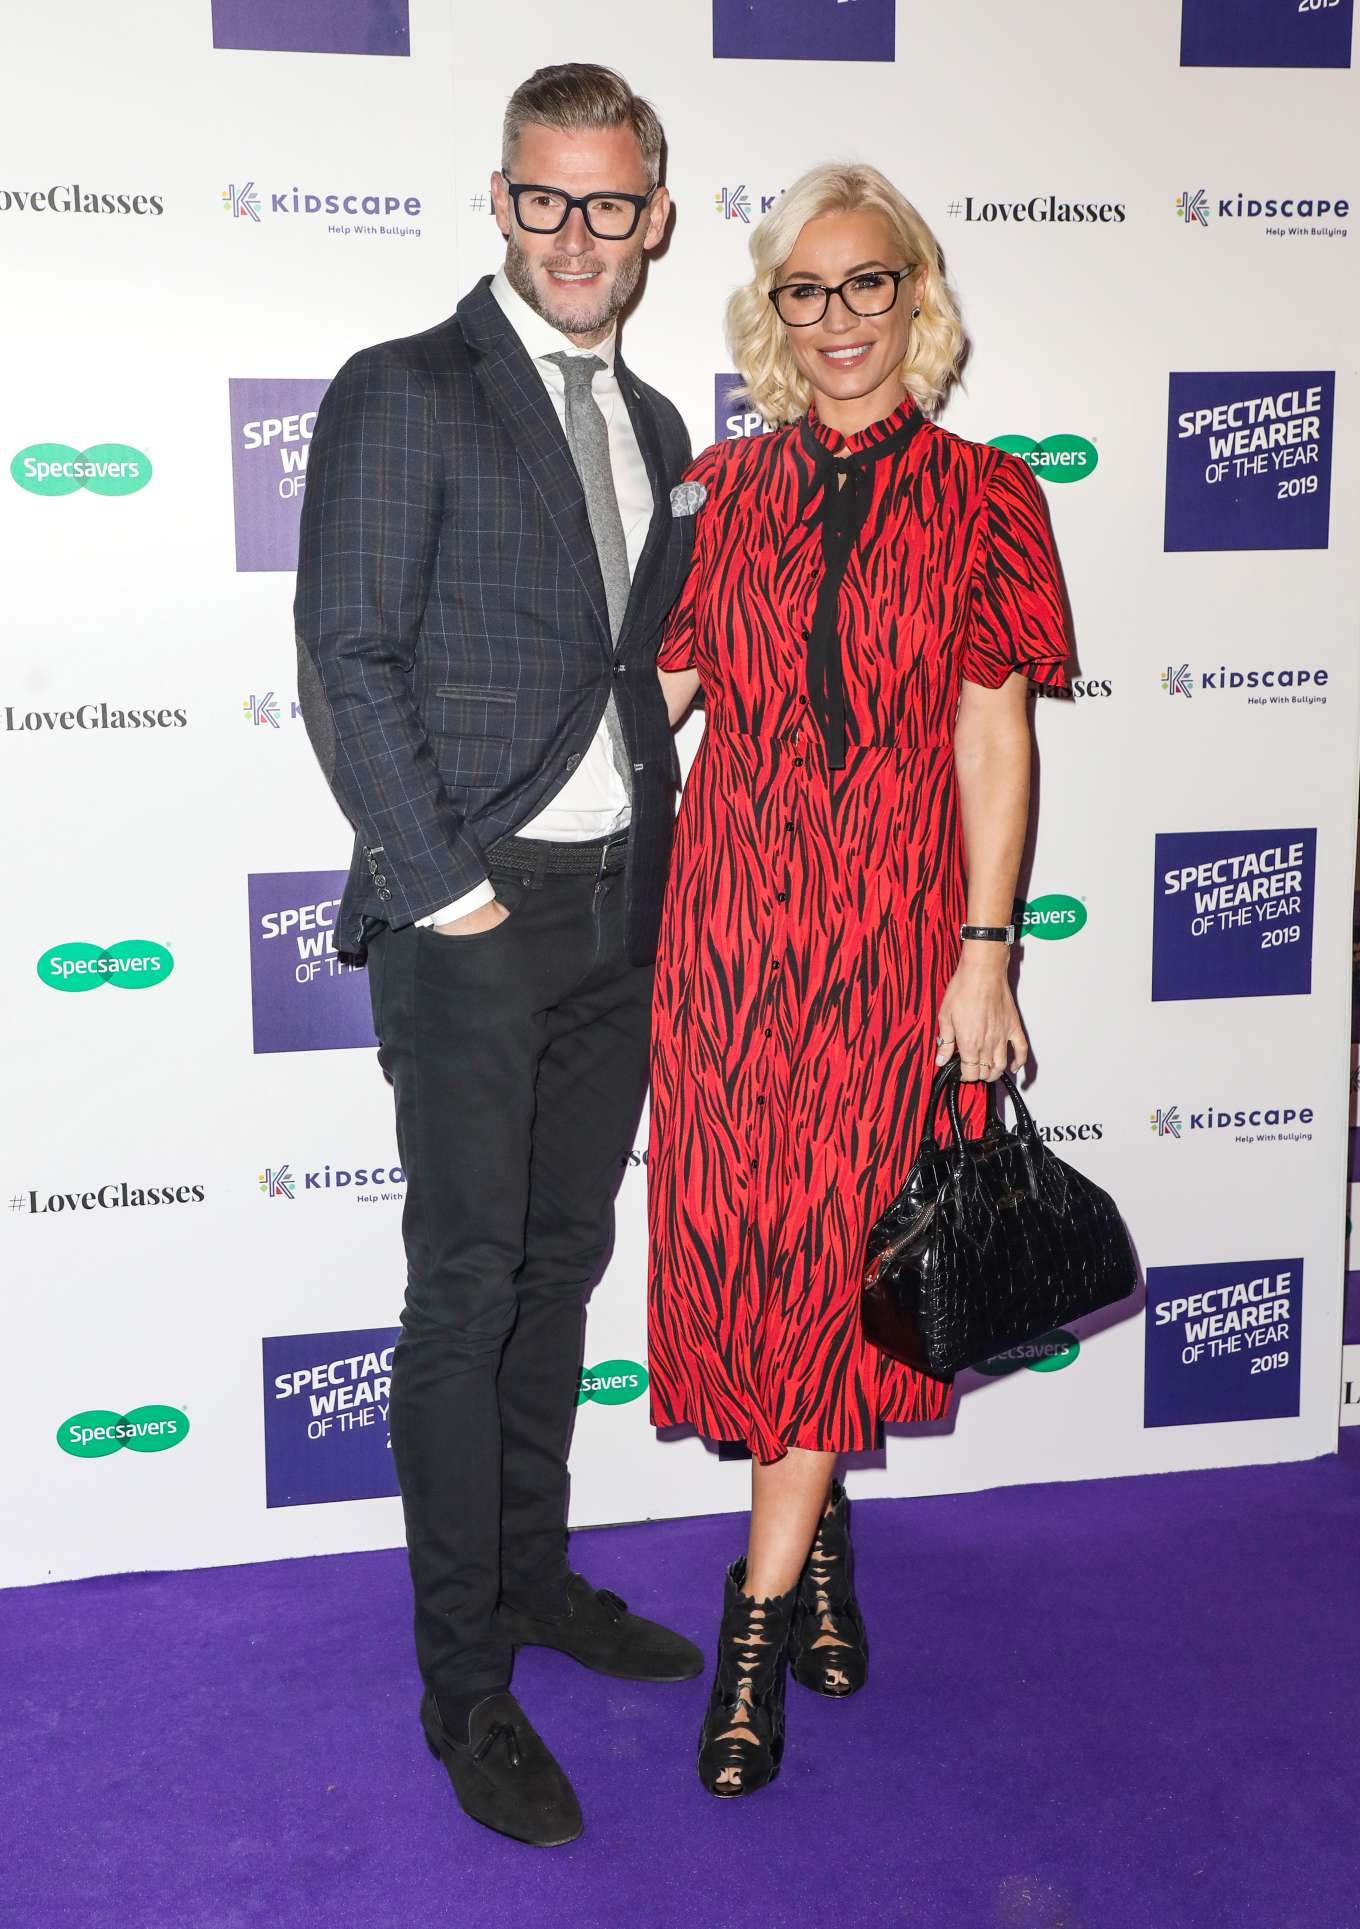 Denise Van Outen 2019 : Denise Van Outen – Specsavers Spectacle Wearer of the Year Awards 2019-14